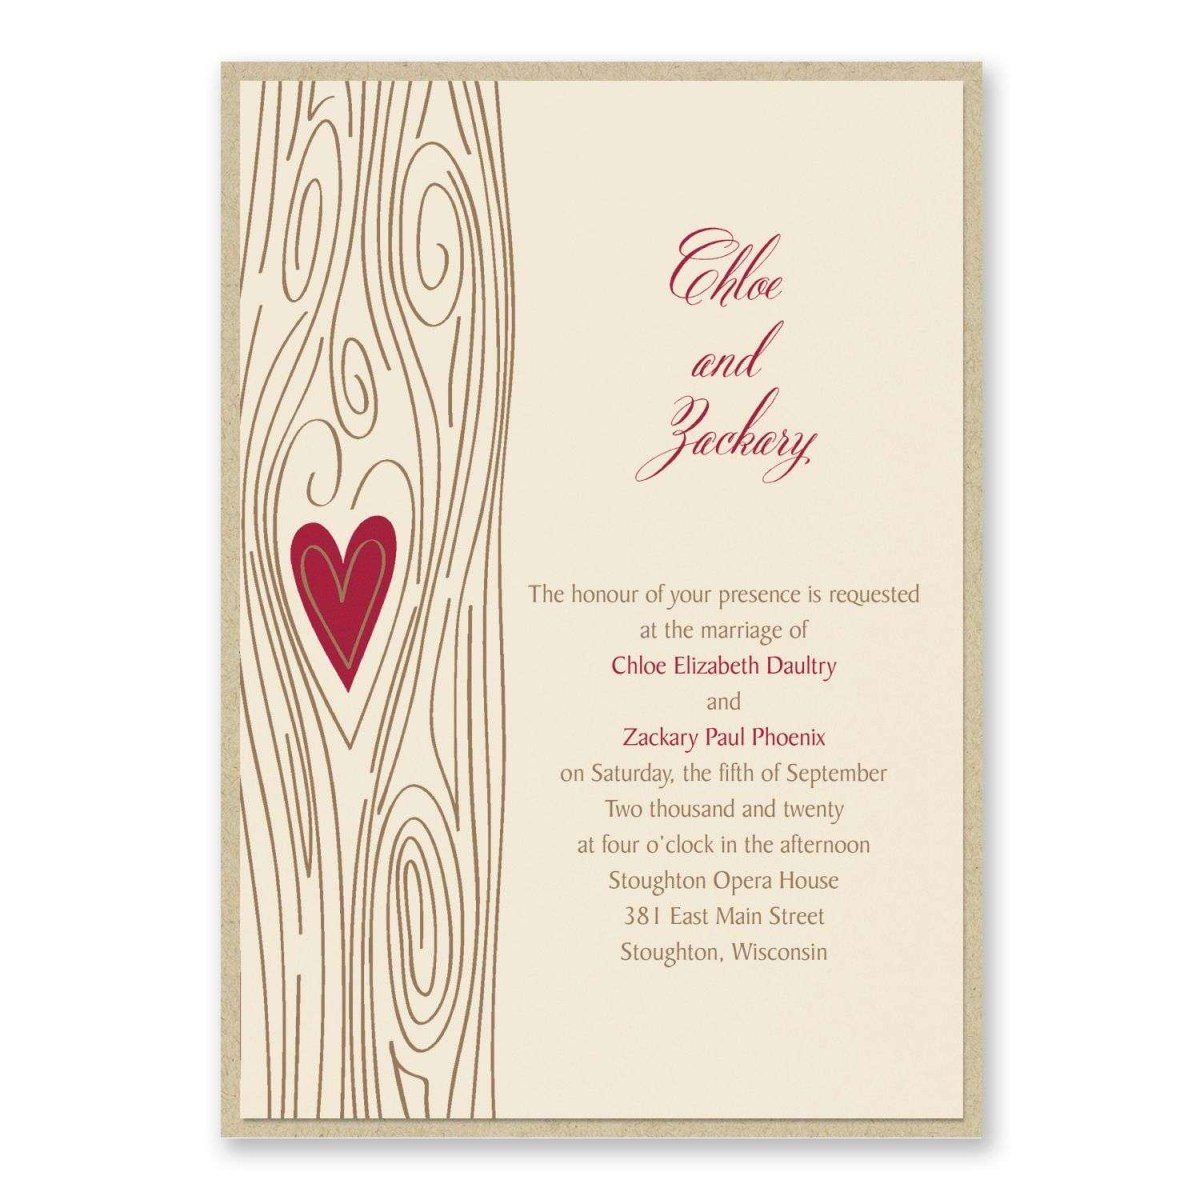 Carlson Wedding Invitations Carlson Craft Wedding Invitations Woodsy Romance Invitation With